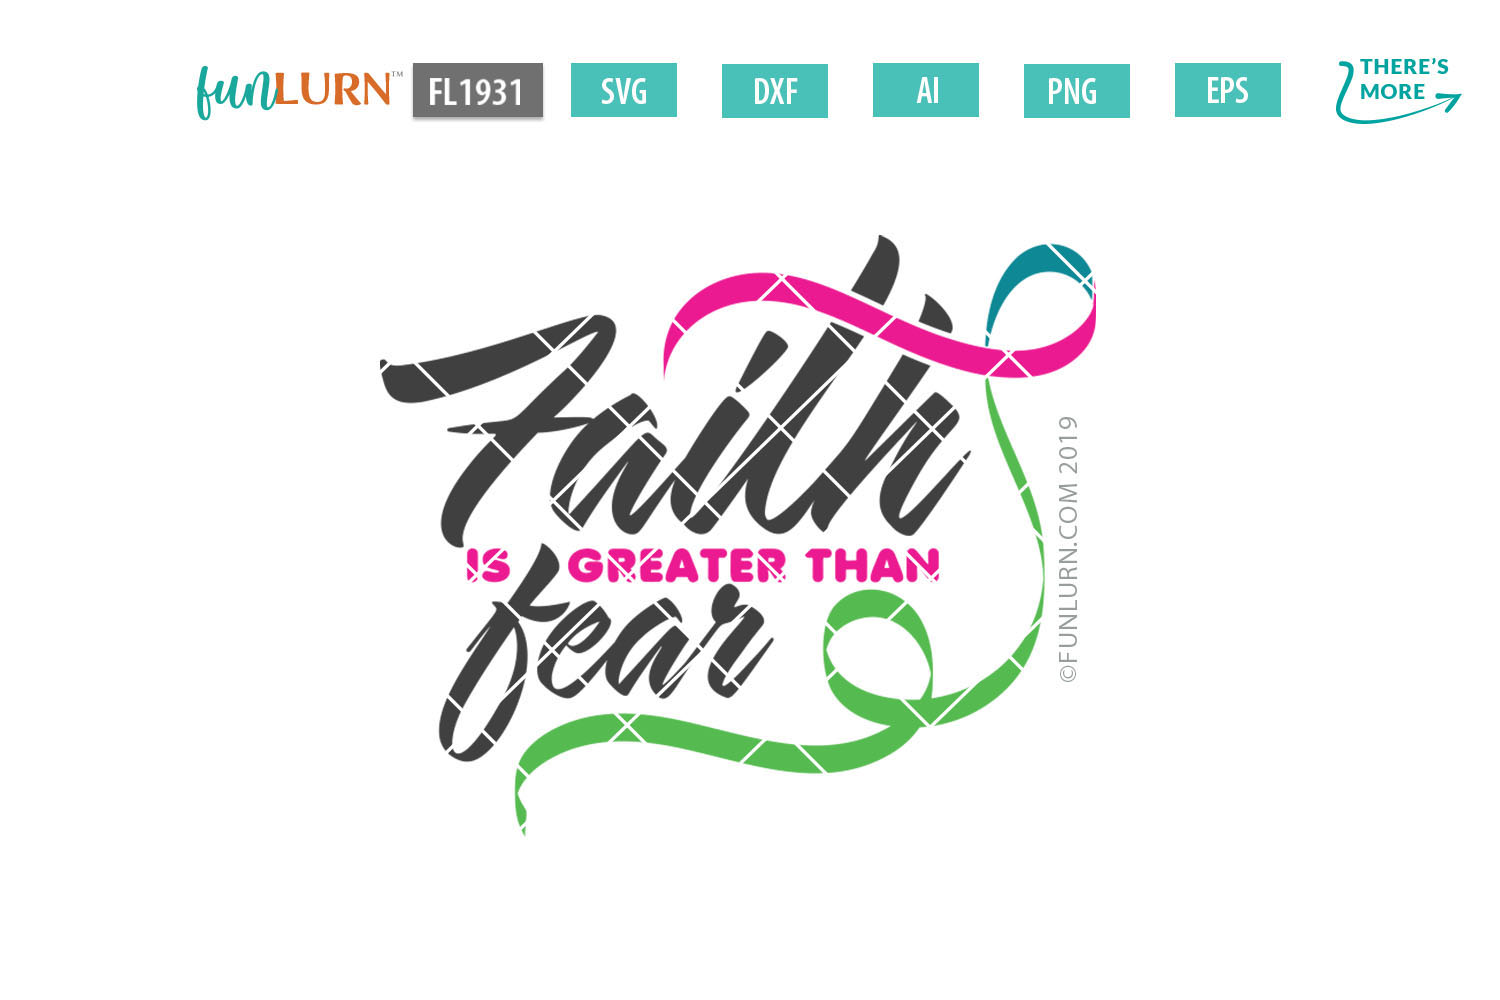 Faith is Greater Than Fear Pink Teal Green Ribbon SVG example image 2